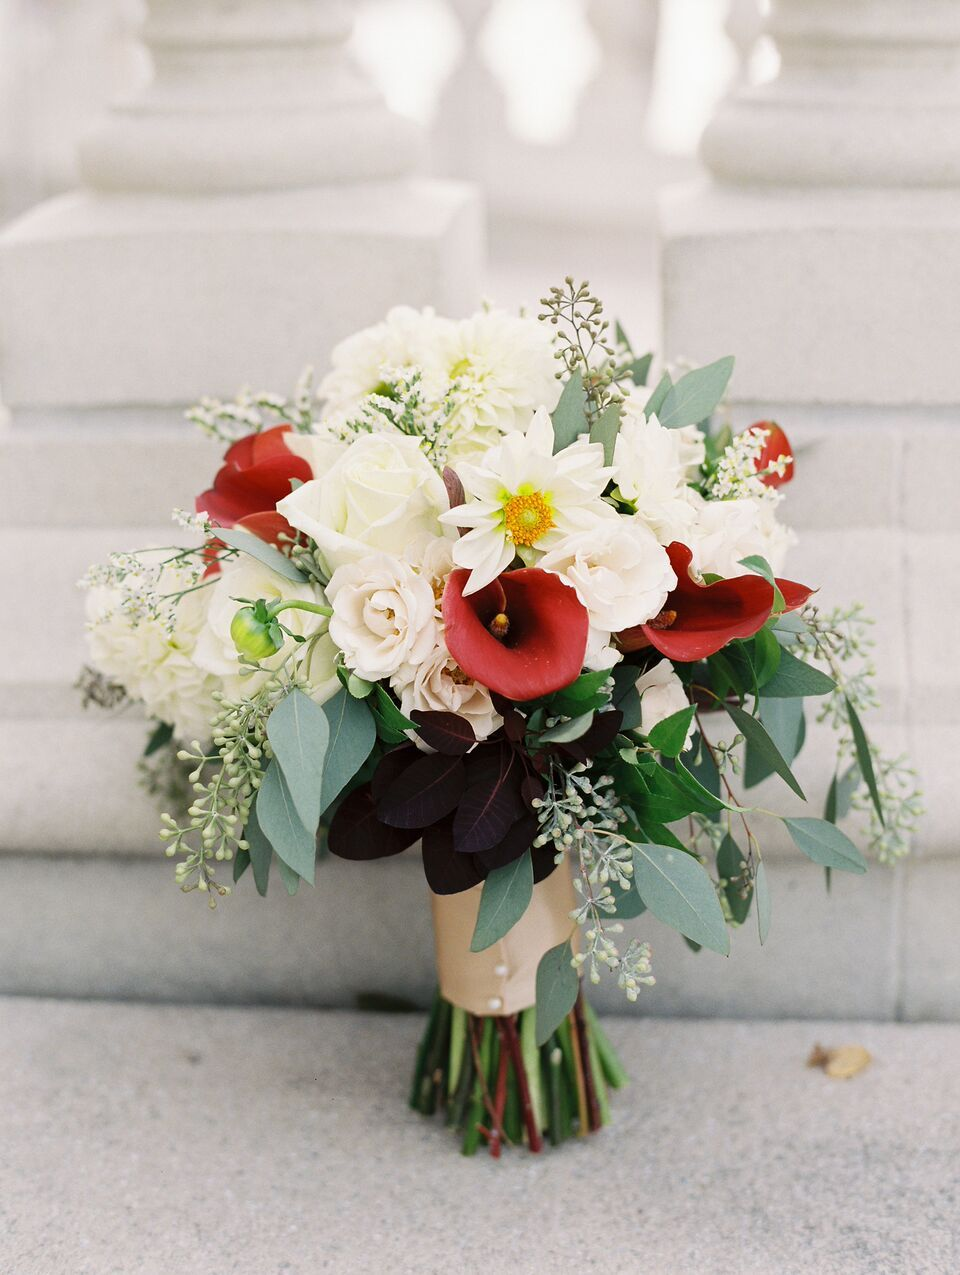 Flowers by sisters floral design studio sistersflowers image flowers by sisters floral design studio sistersflowers image by clary pfeiffer merlot bridesmaid bouquetsbridal izmirmasajfo Choice Image